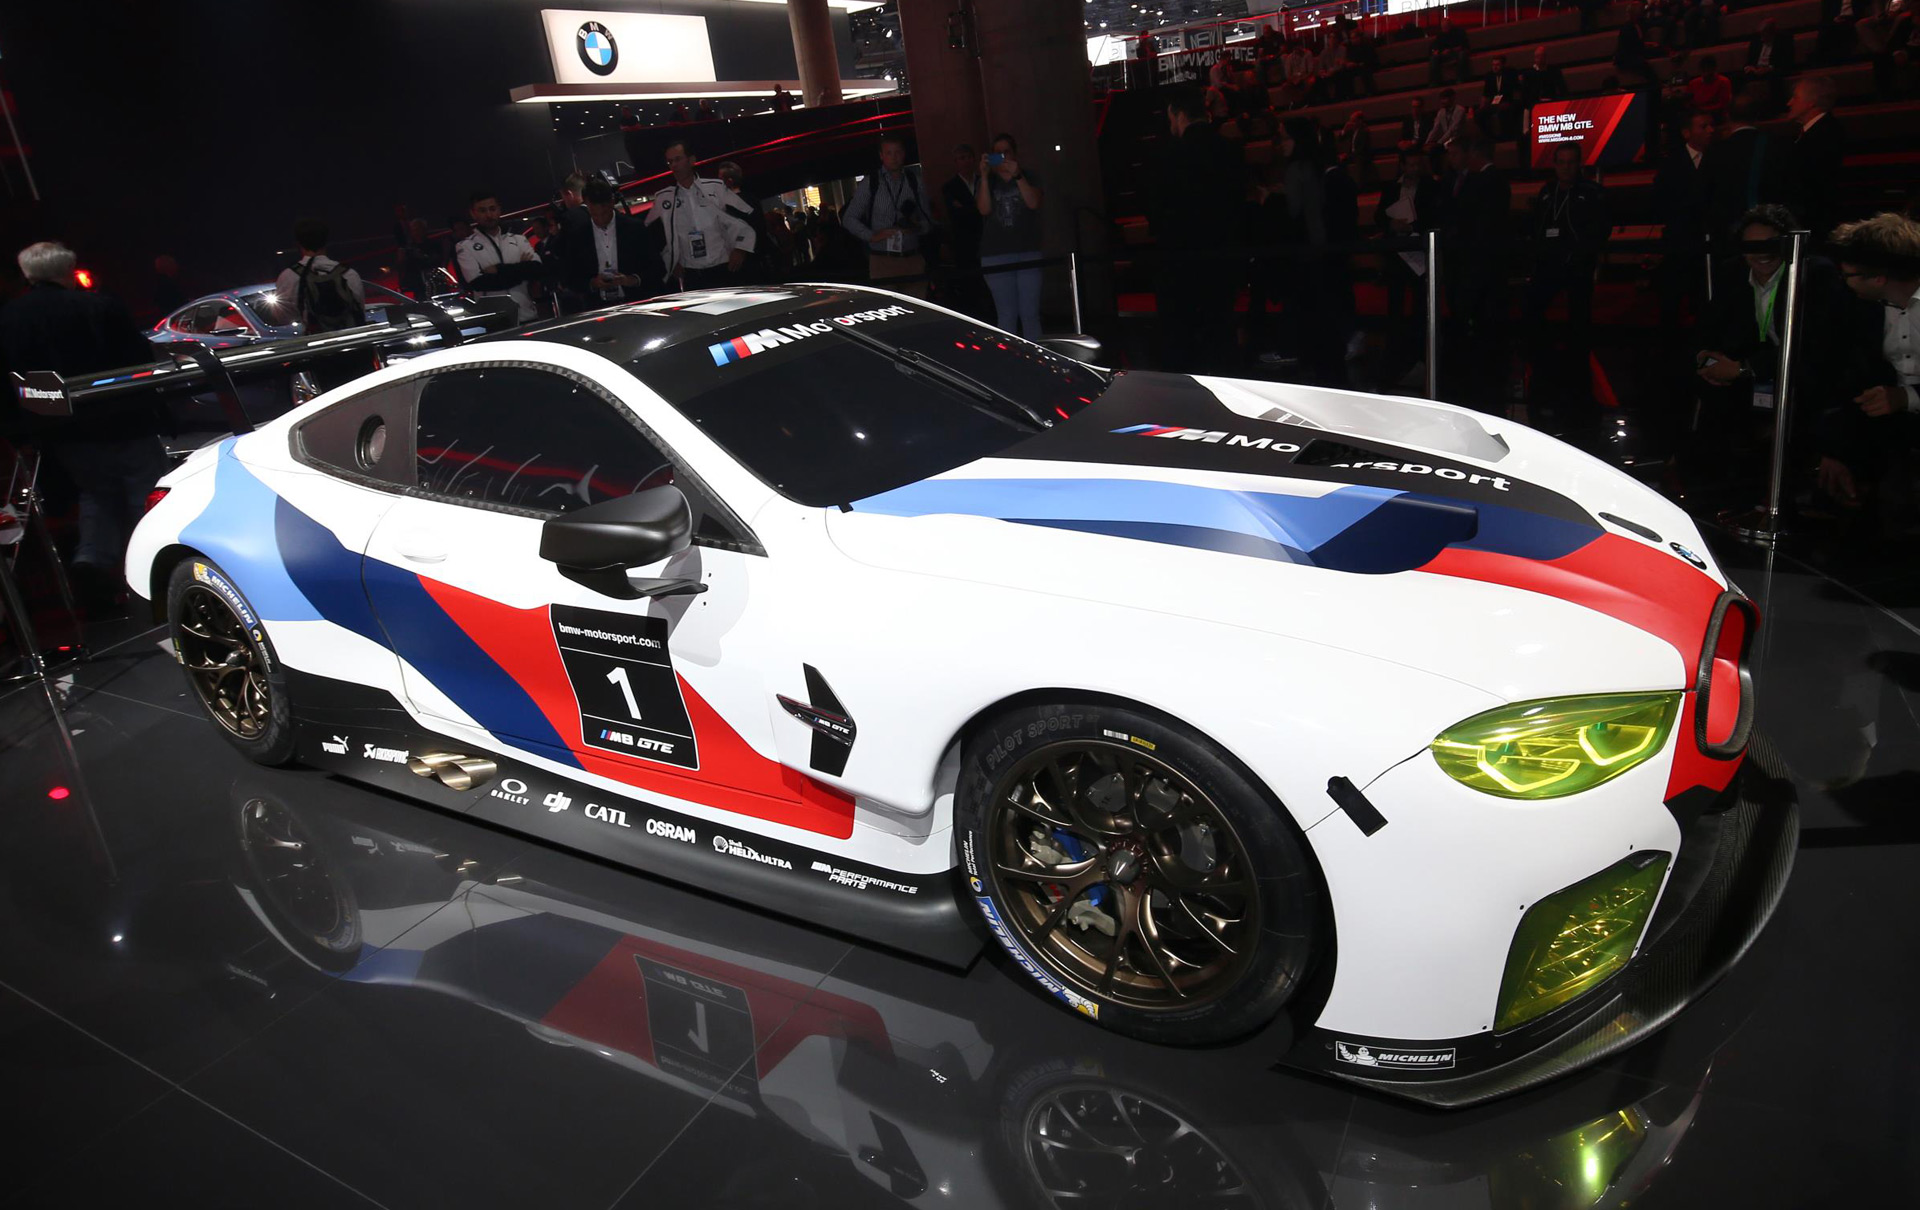 Bmw M8 Gte Racecar Debuts In Frankfurt Ready To Battle At Le Mans